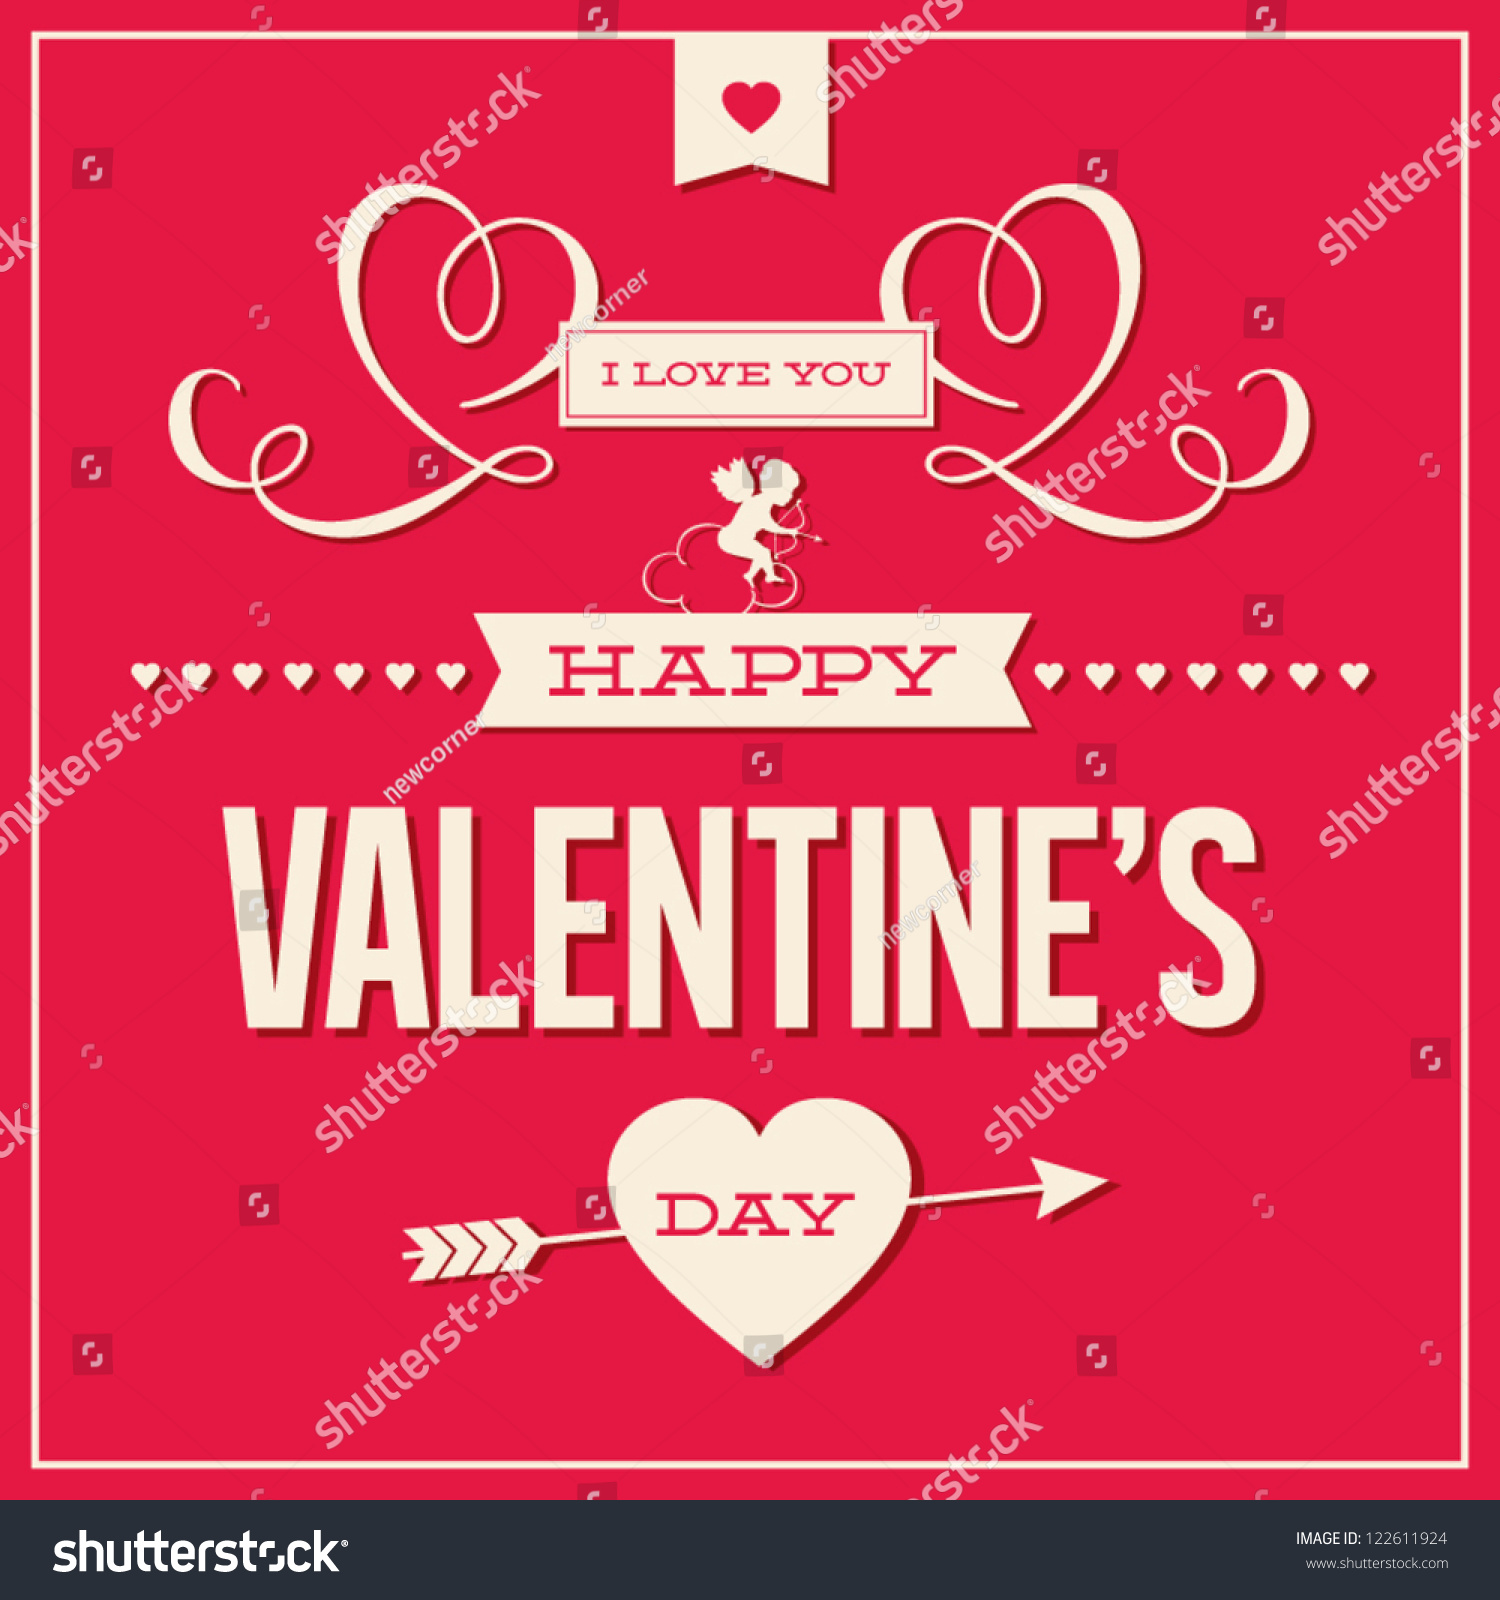 Happy Valentines Day Cards Ornaments Hearts Vector 122611924 – Happy Valentines Day Cards Images